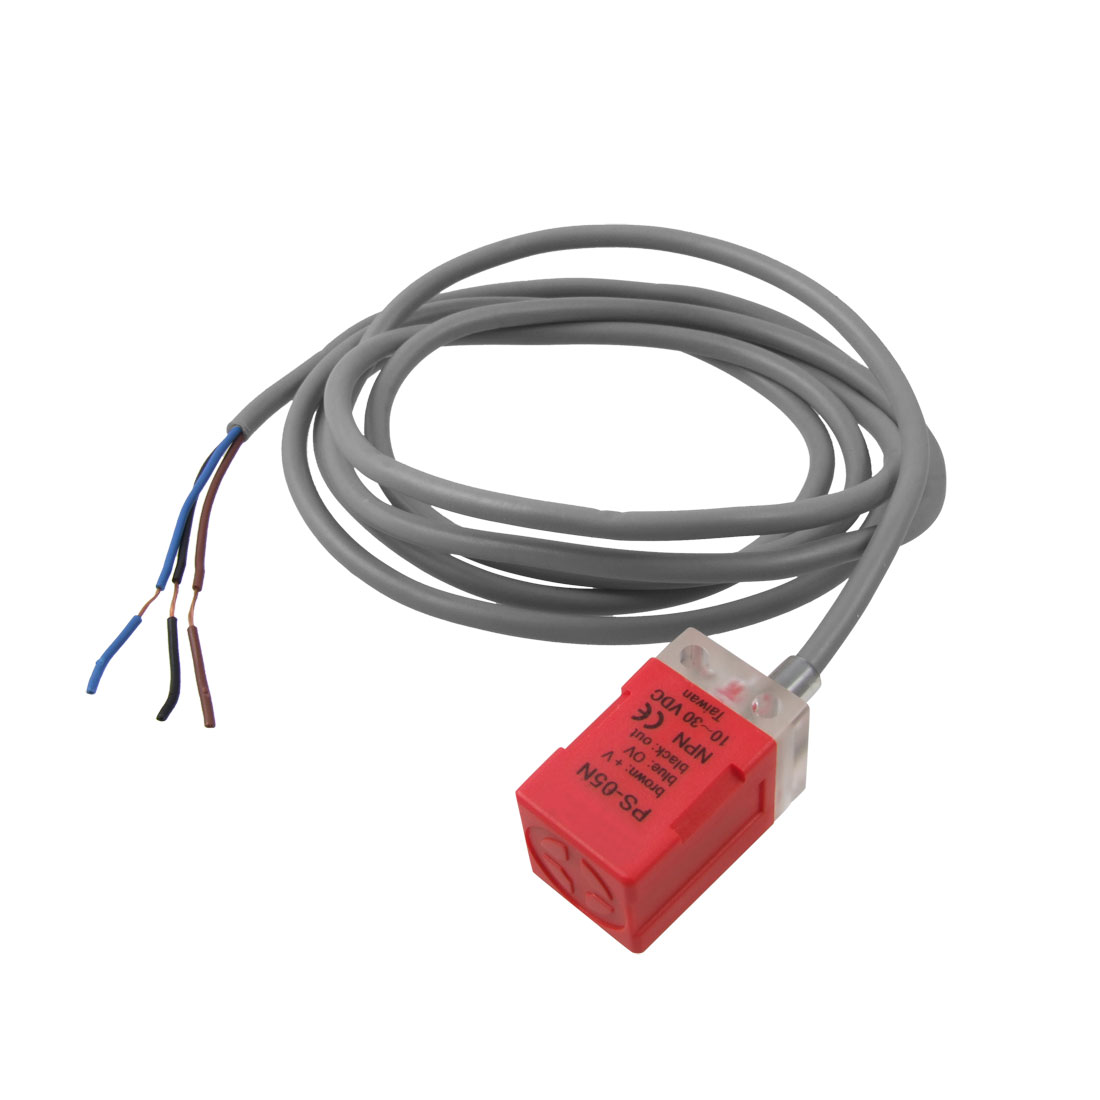 DC 10-30V 200mA NPN NO 5mm Inductive Proximity Sensor Approach Switch PS-05N